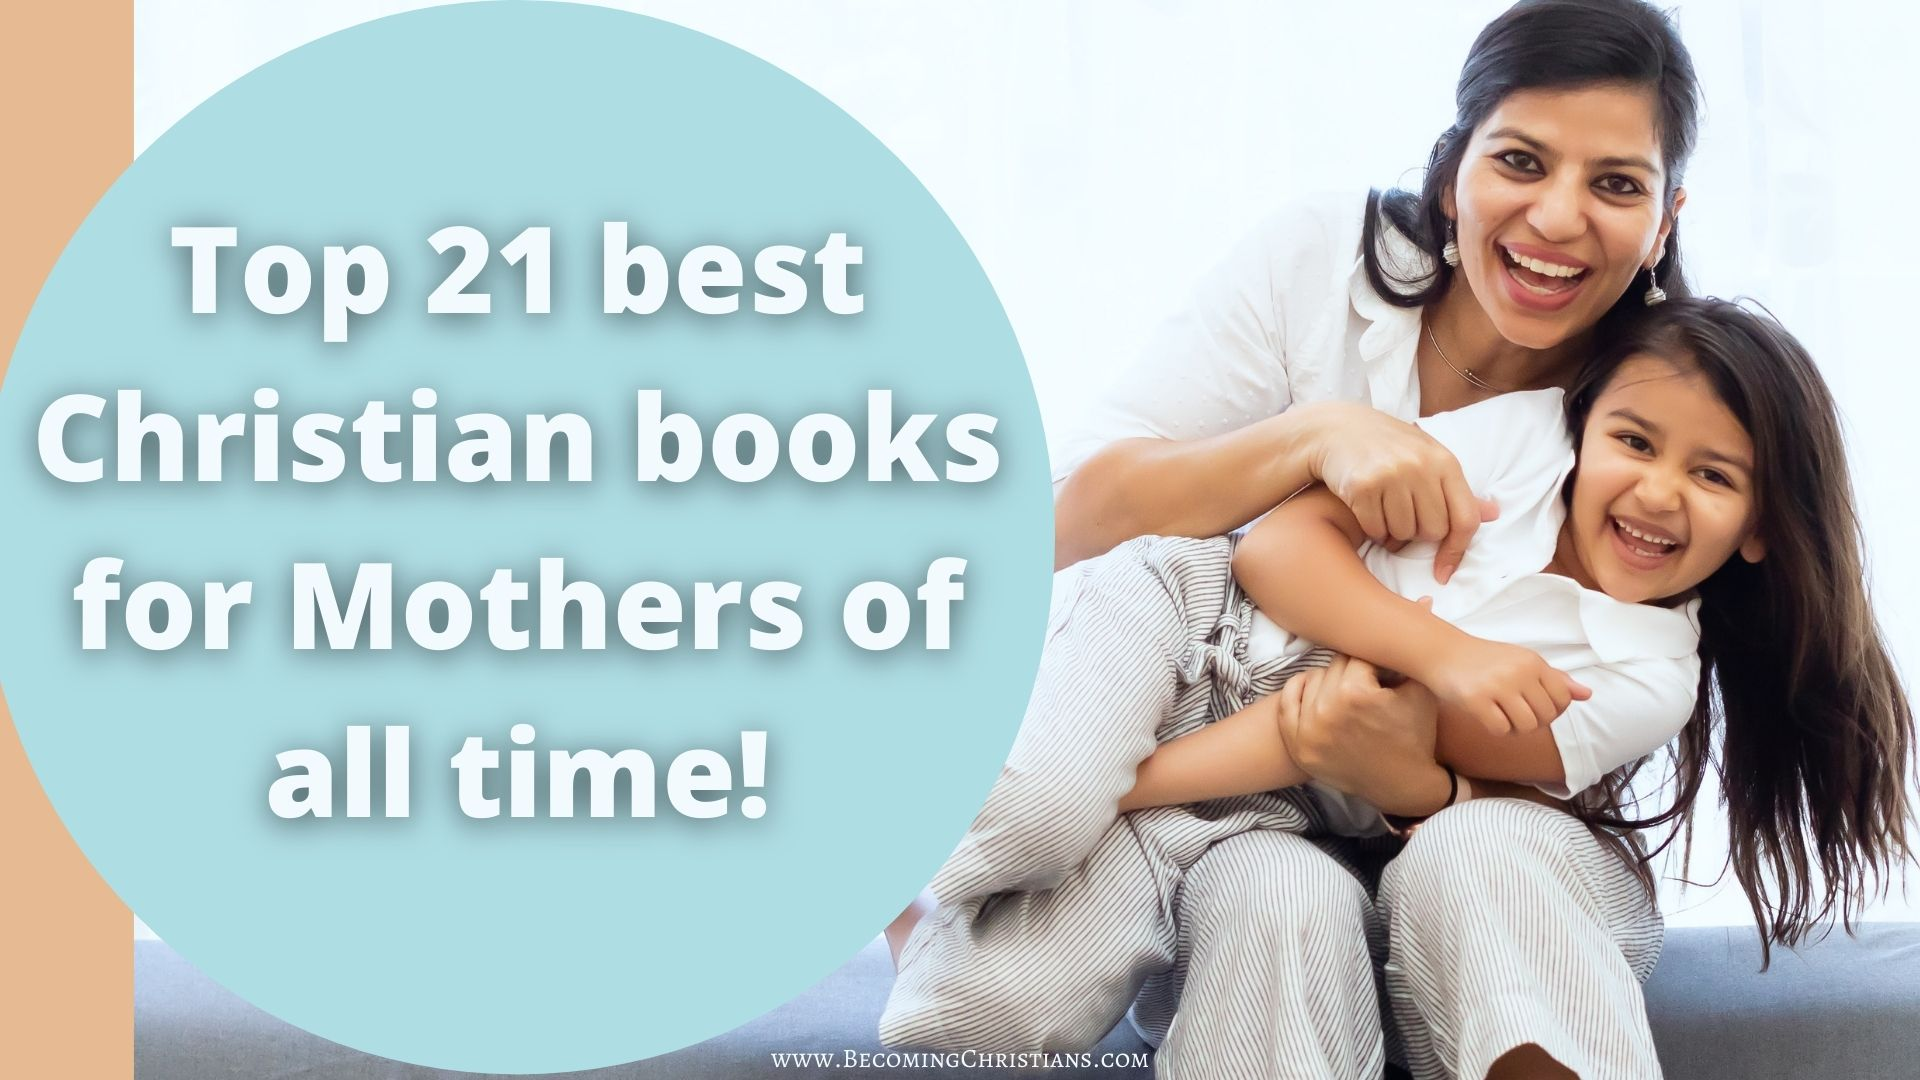 Top 21 best Christian books for Mothers of all time!